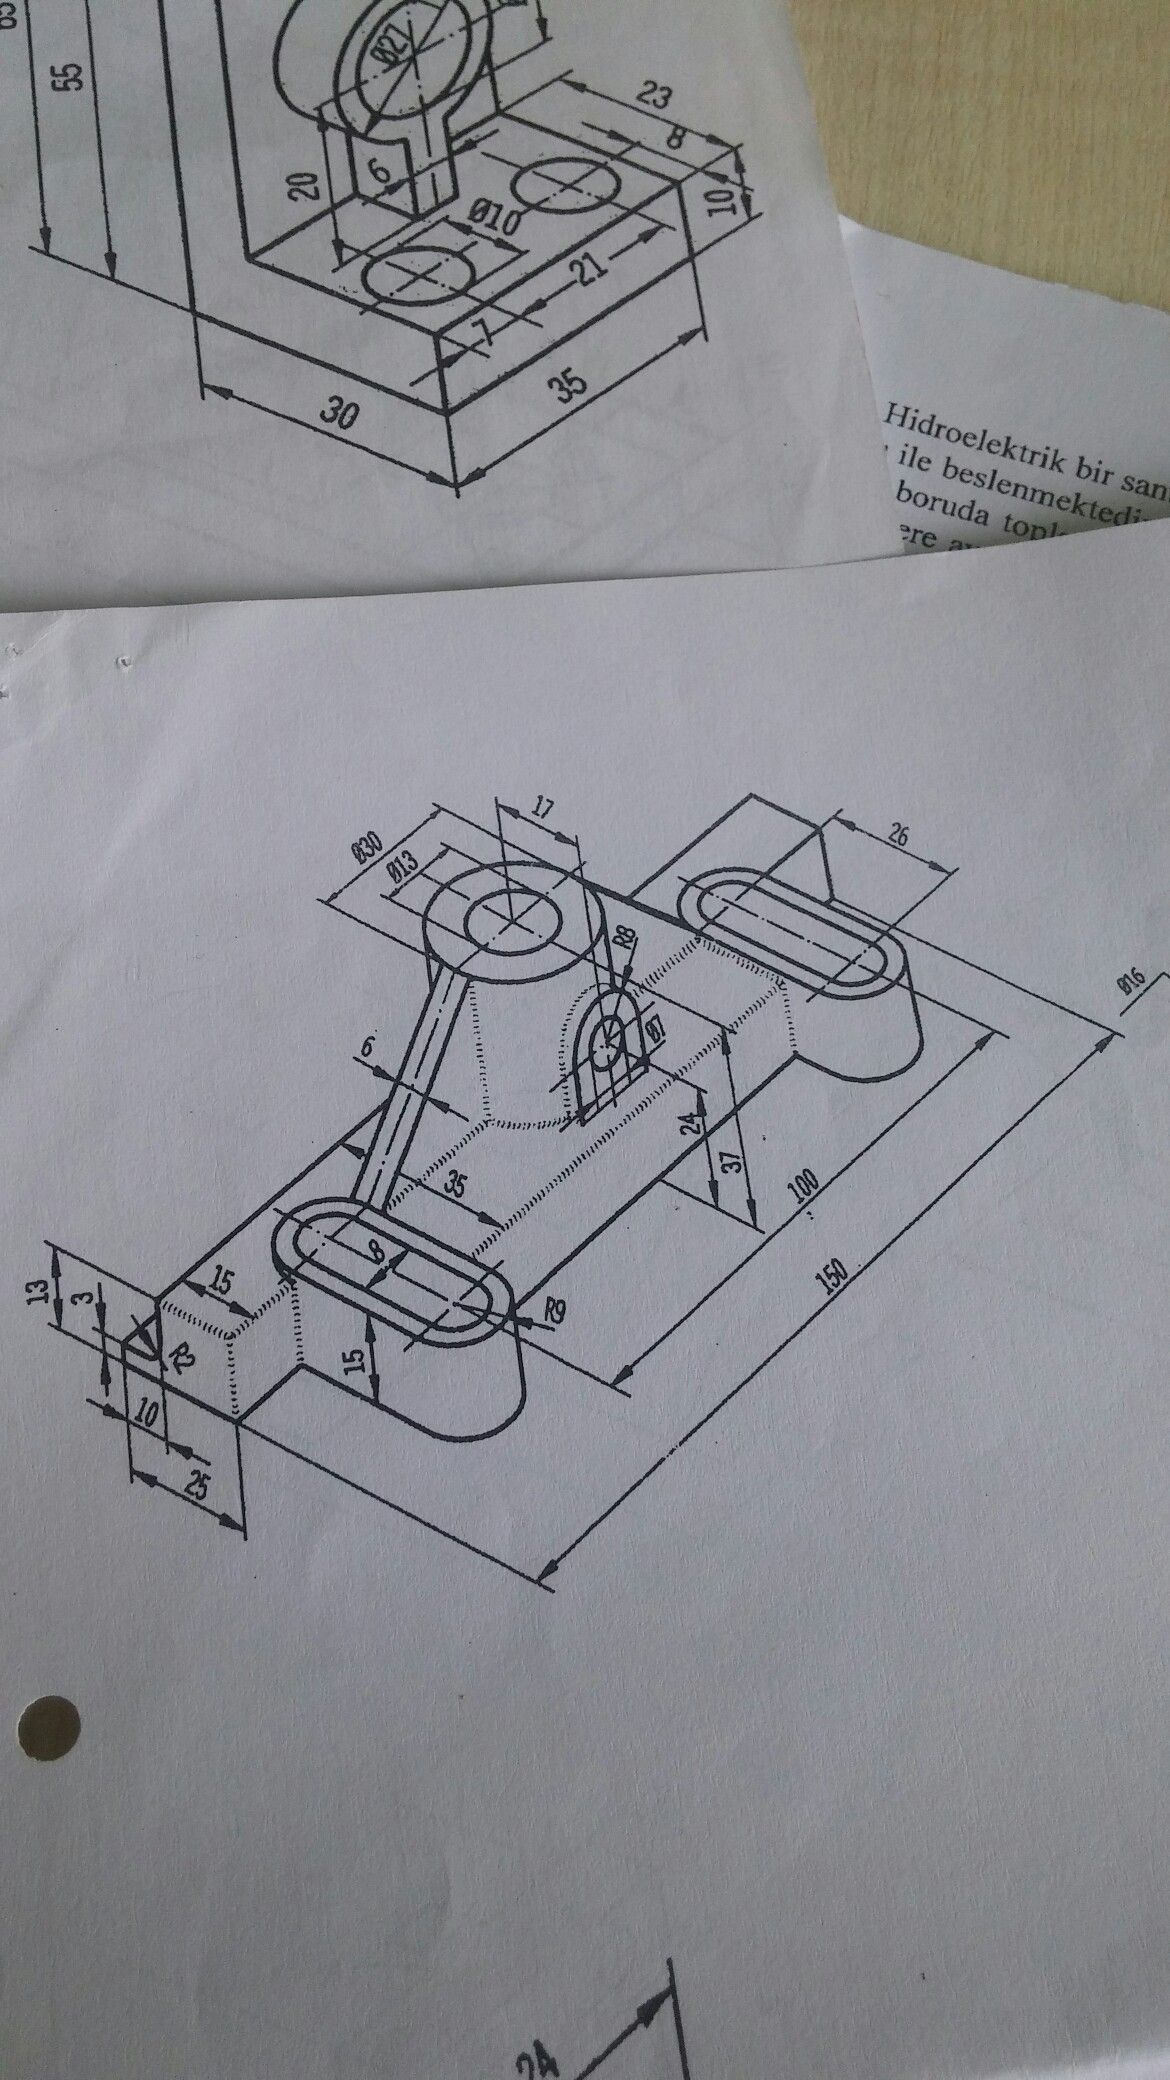 Pin By Wilsonkihara On 3d Pinterest Drawings 3d Drawings And